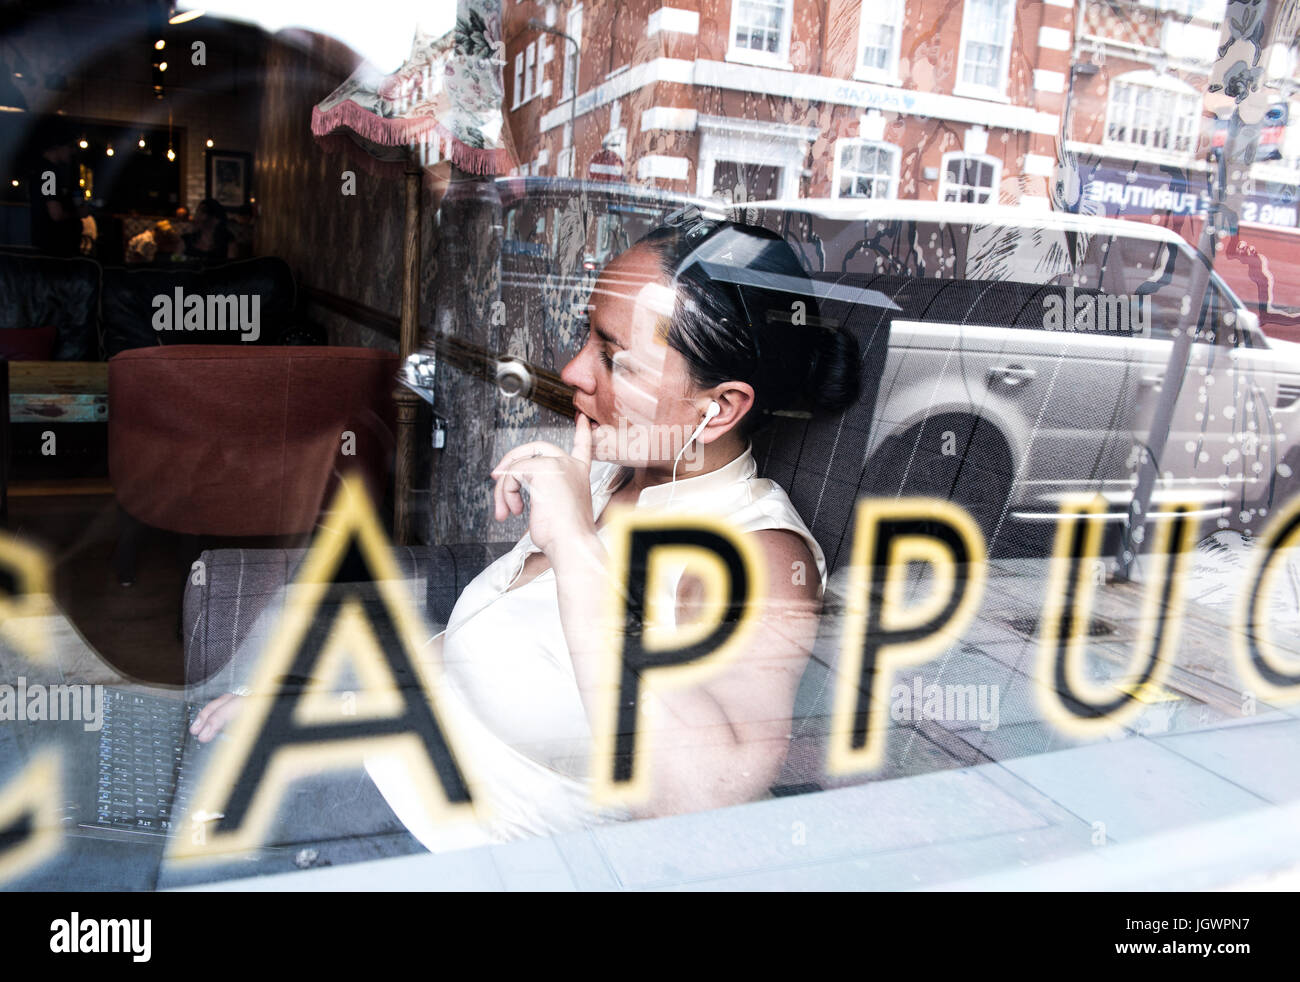 View through window of businesswoman working in coffee bar - Stock Image